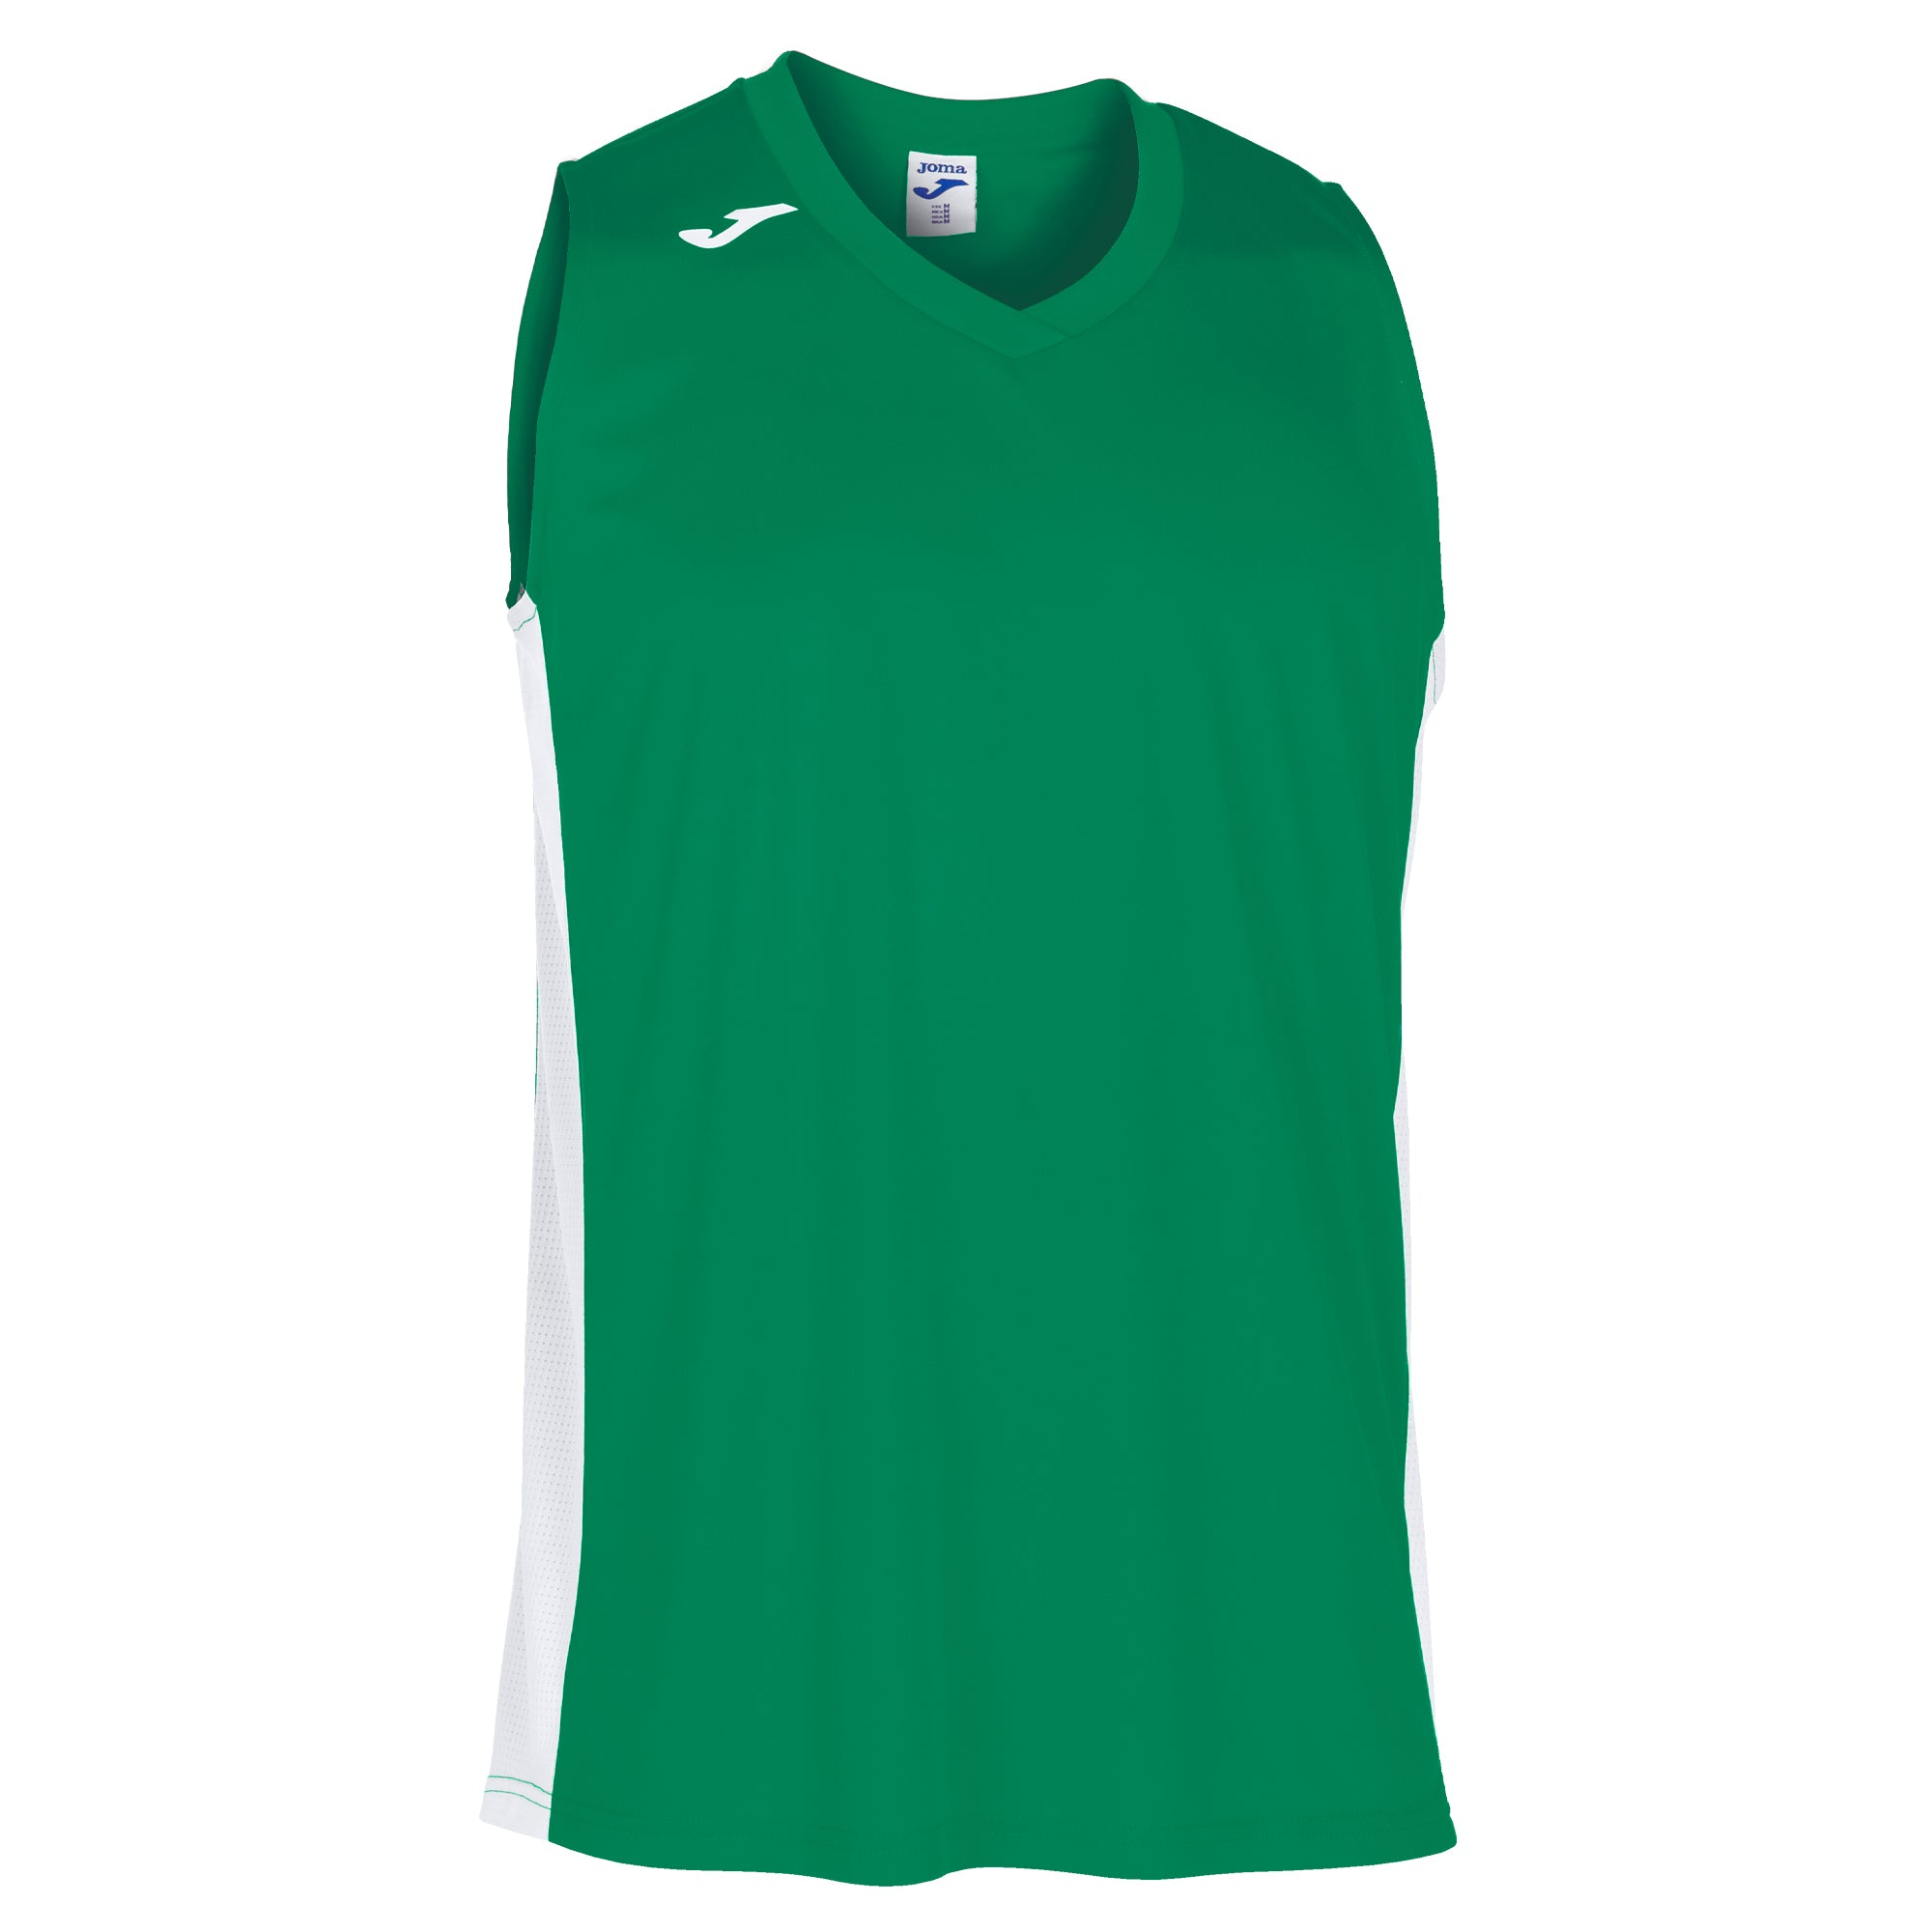 Teamwear - Joma Cancha III Sleeveless - Green/White - JO-101573-452